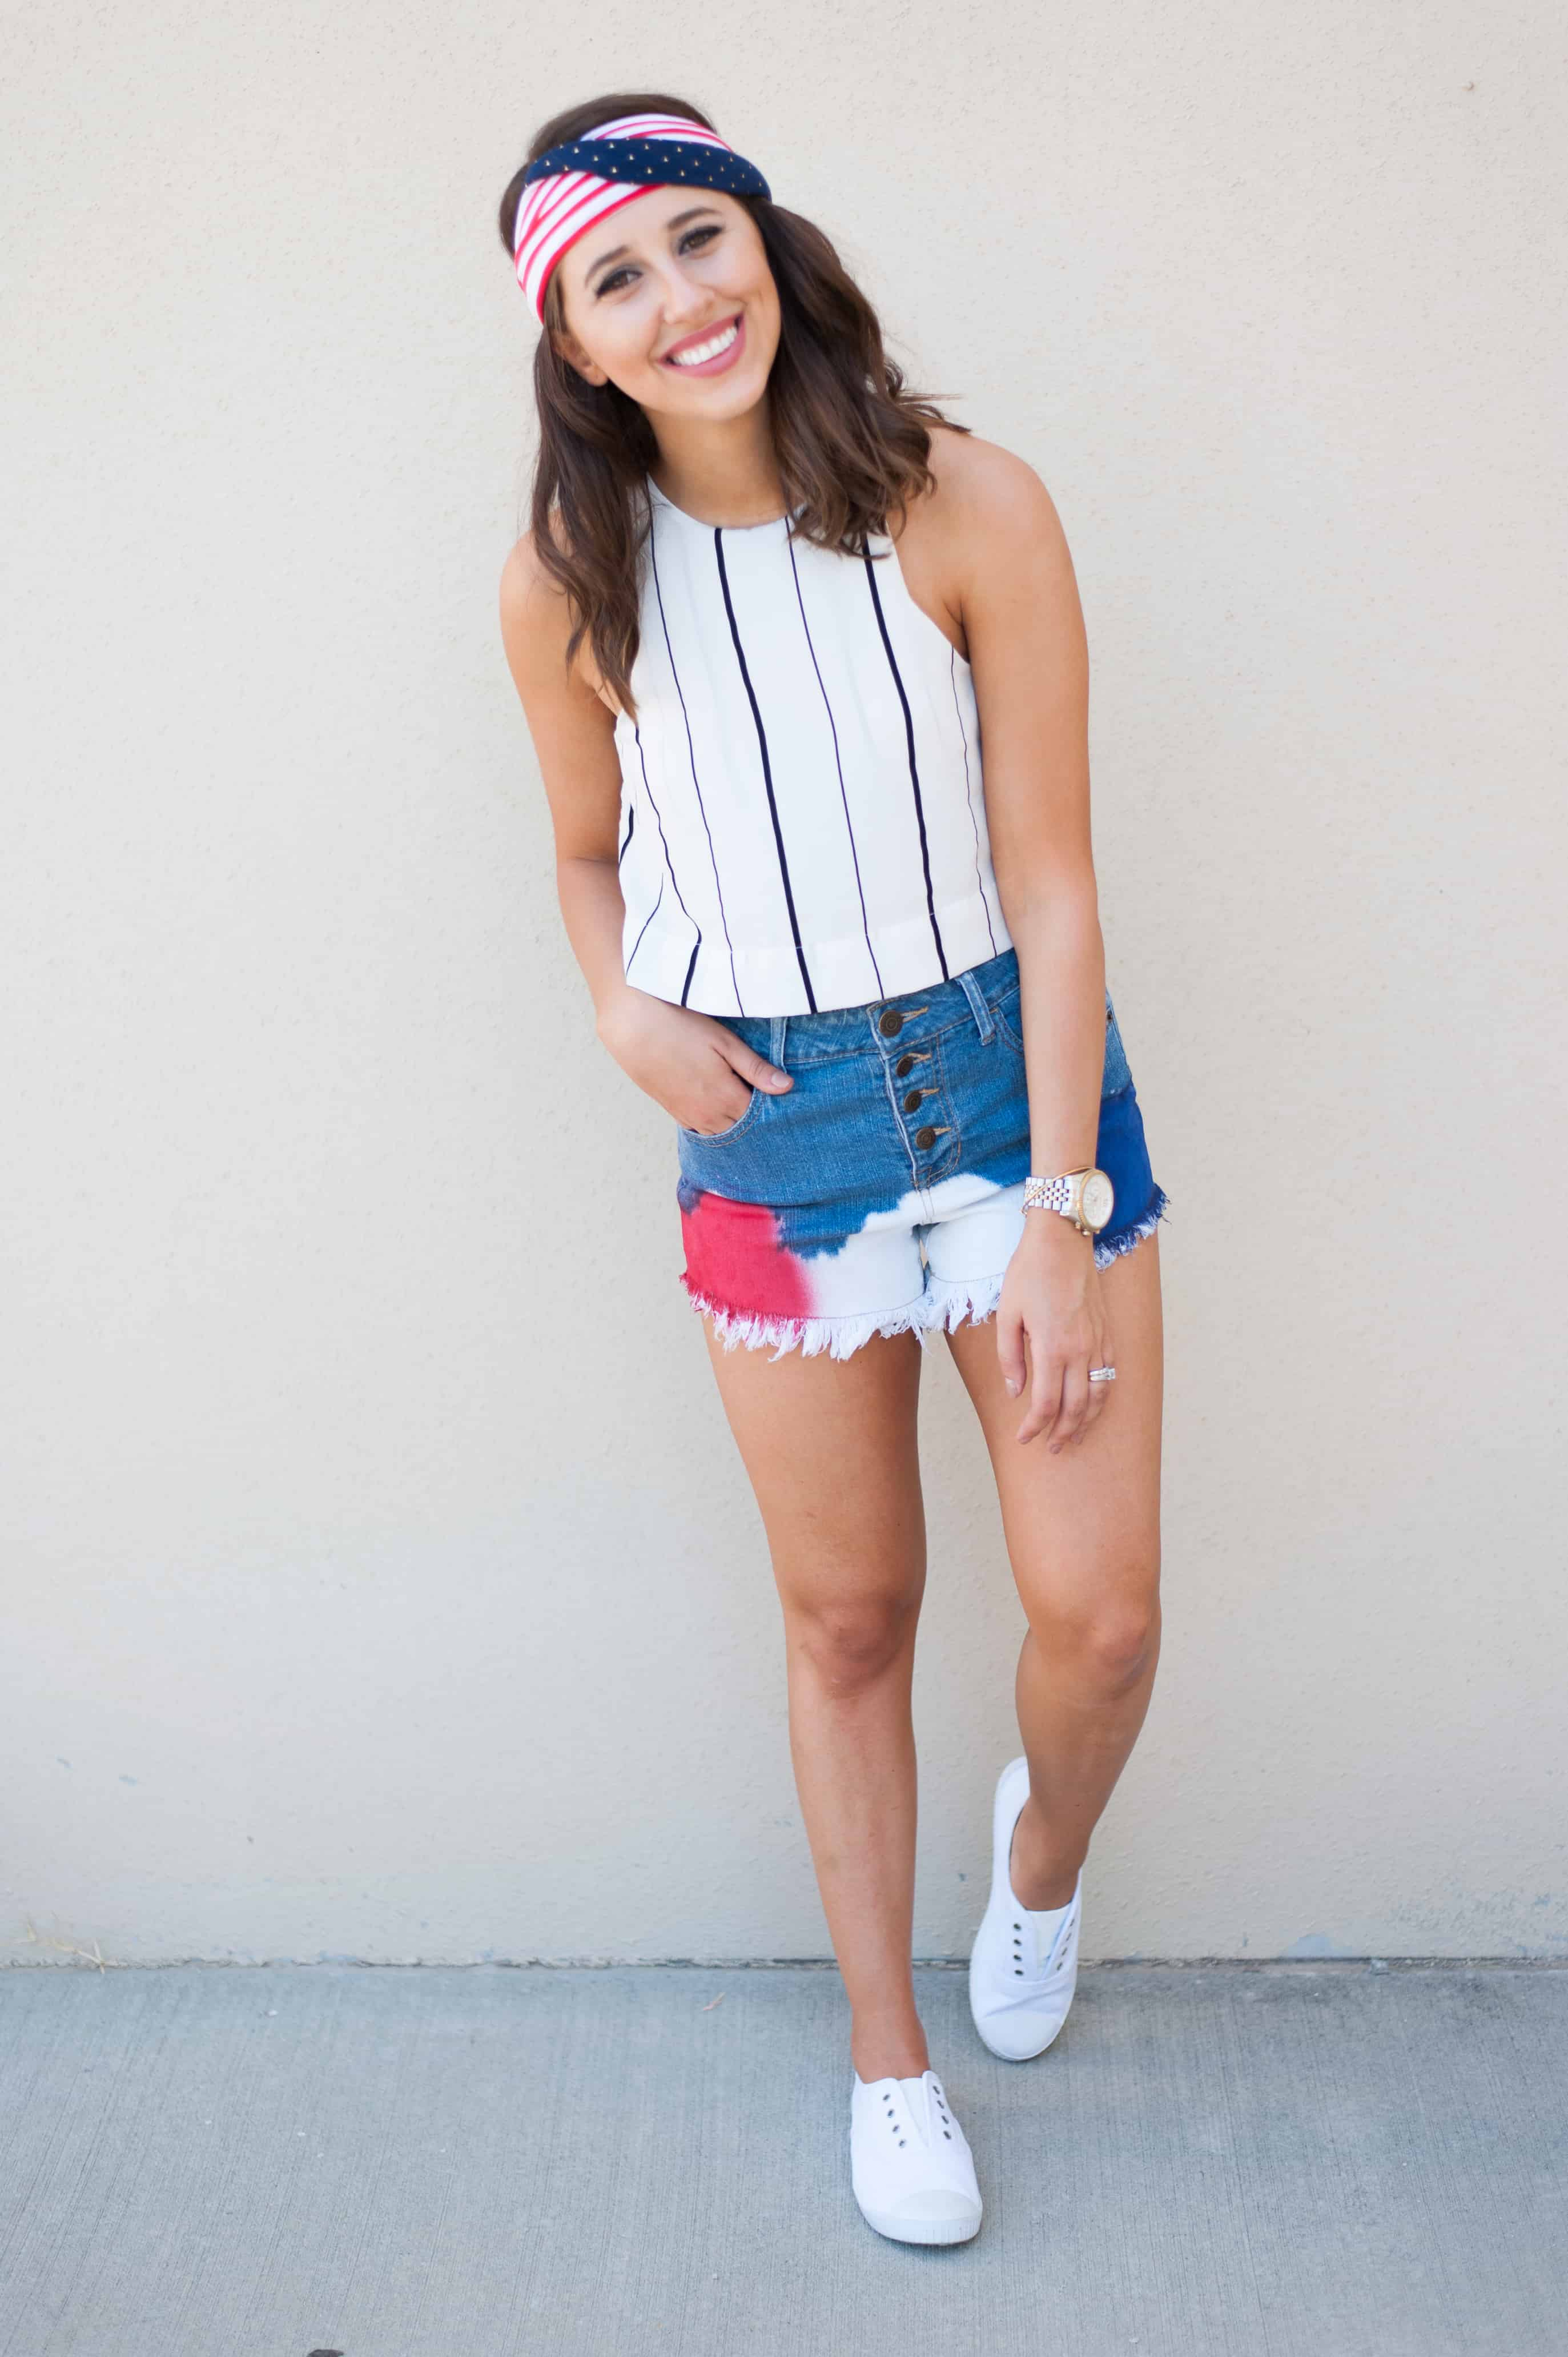 Dress Up Buttercup // A Houston-based fashion and inspiration blog developed to daily inspire your own personal style by Dede Raad | Tis the season of red white blue